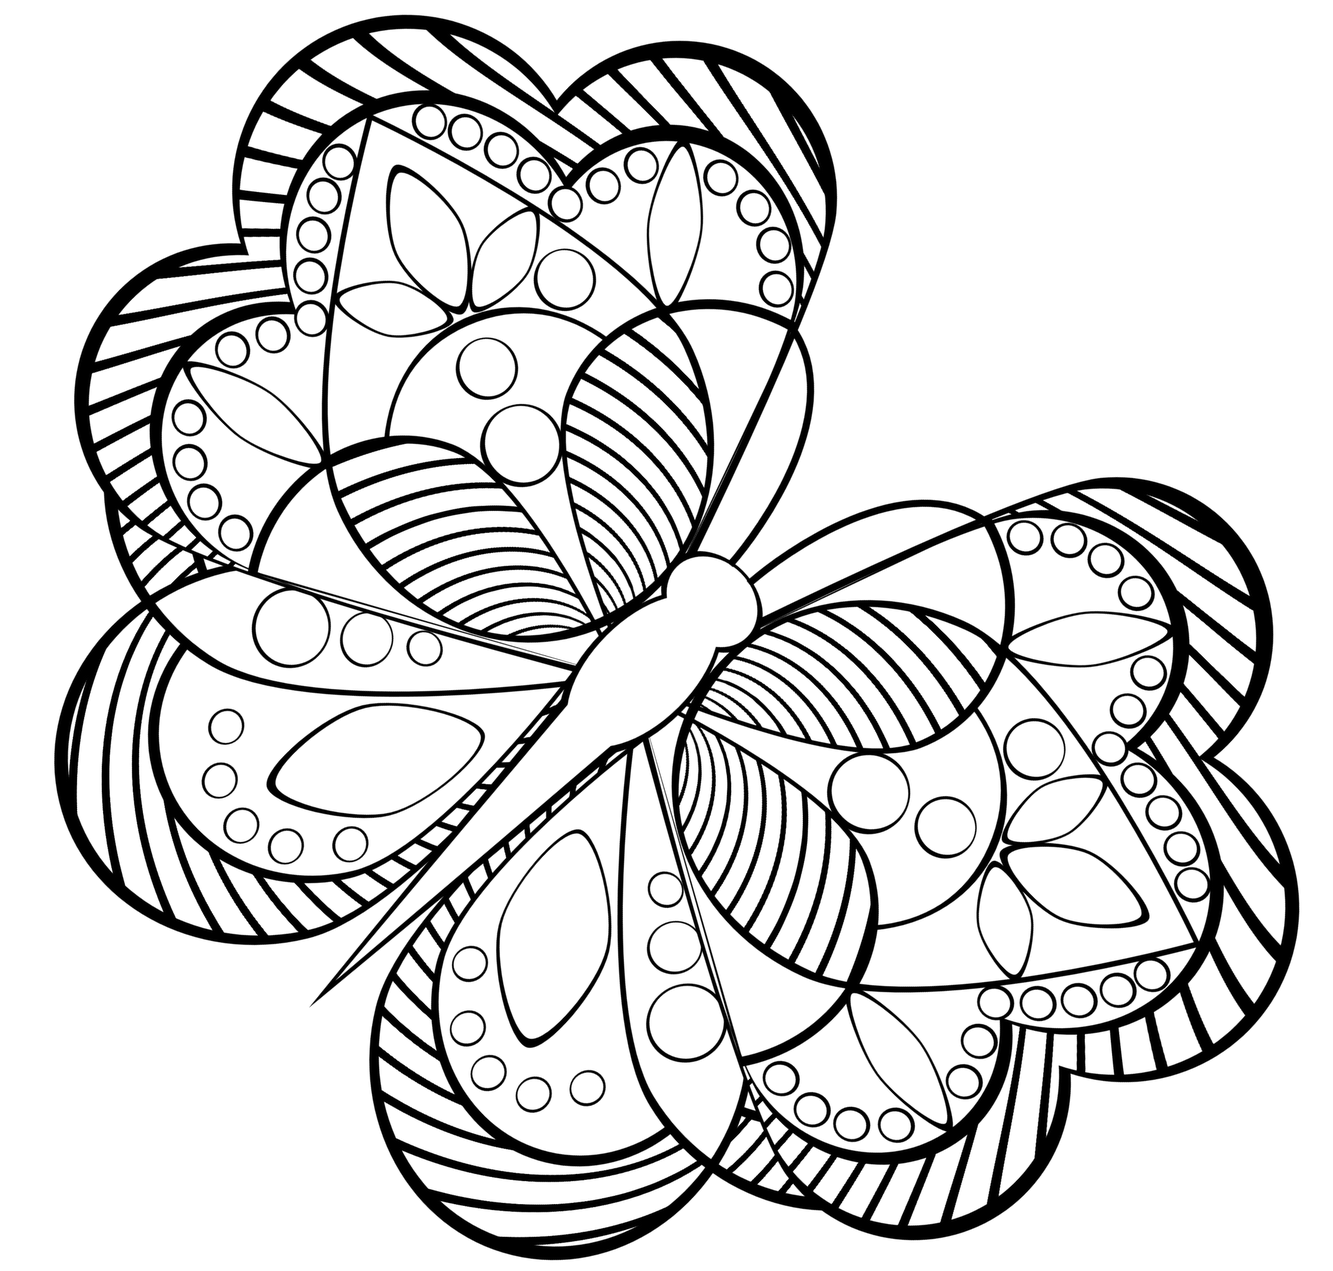 1333x1271 Best Free Printable Coloring Pages For Kids And Teens